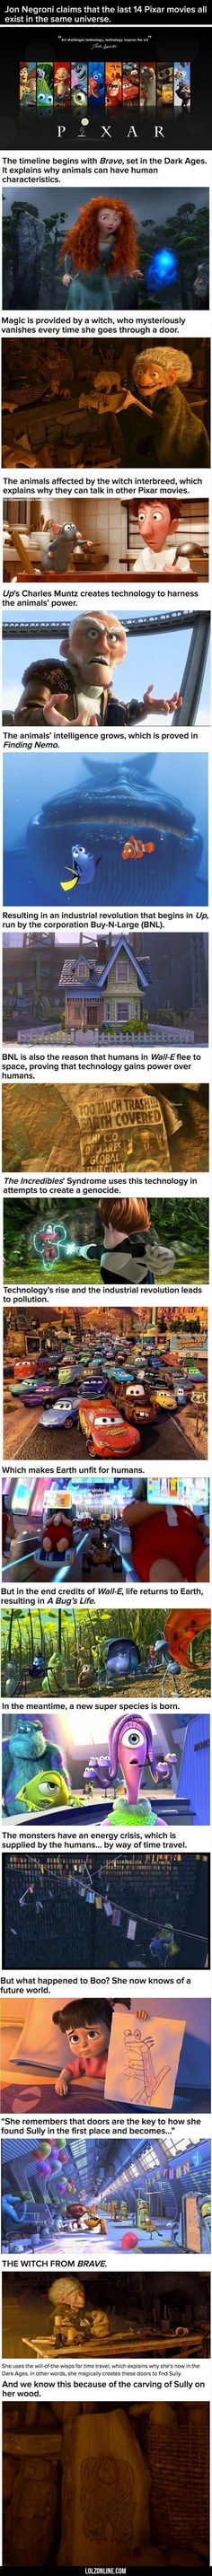 Mind-blowing Pixar Theory#funny #lol #lolzonline